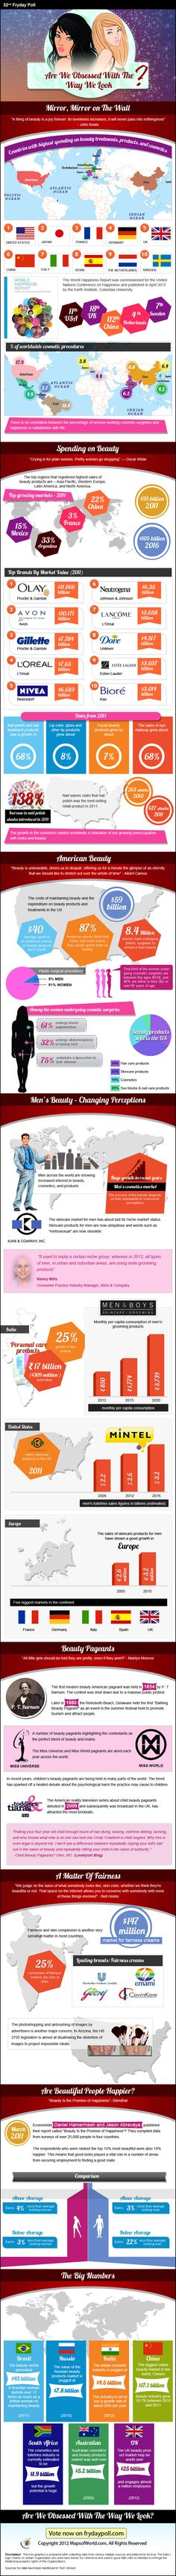 Find In-depth Review And Infographic About Beauty & Cosmetics. Learn more about worldwide spending on beauty products, statistics on cosmetic procedures, top brands, numbers from the US, stats about male grooming products, beauty pageants, fairness creams